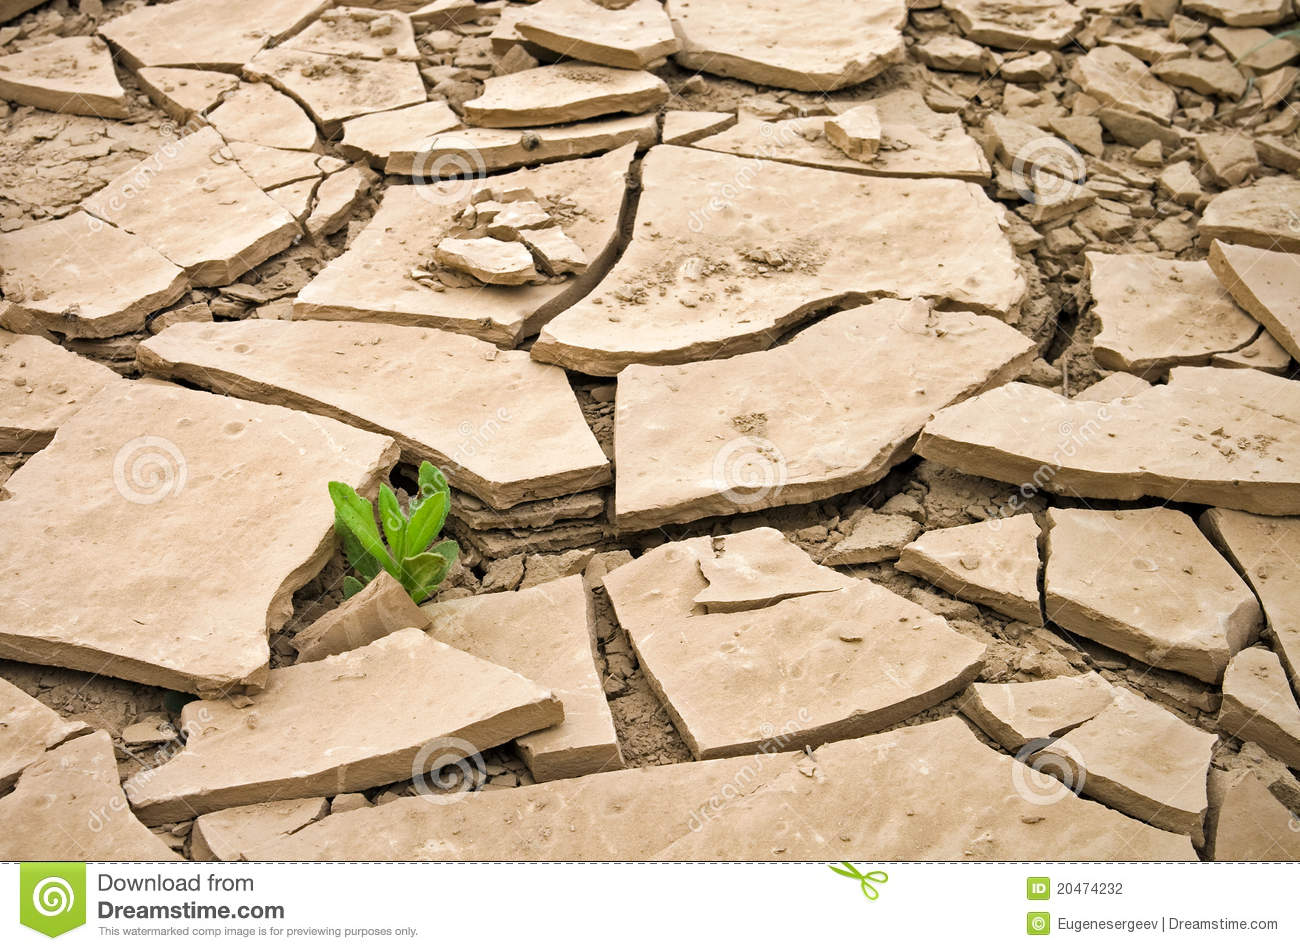 wild plant growing in a cracked dry ground stock child praying clipart image child's praying hands clipart